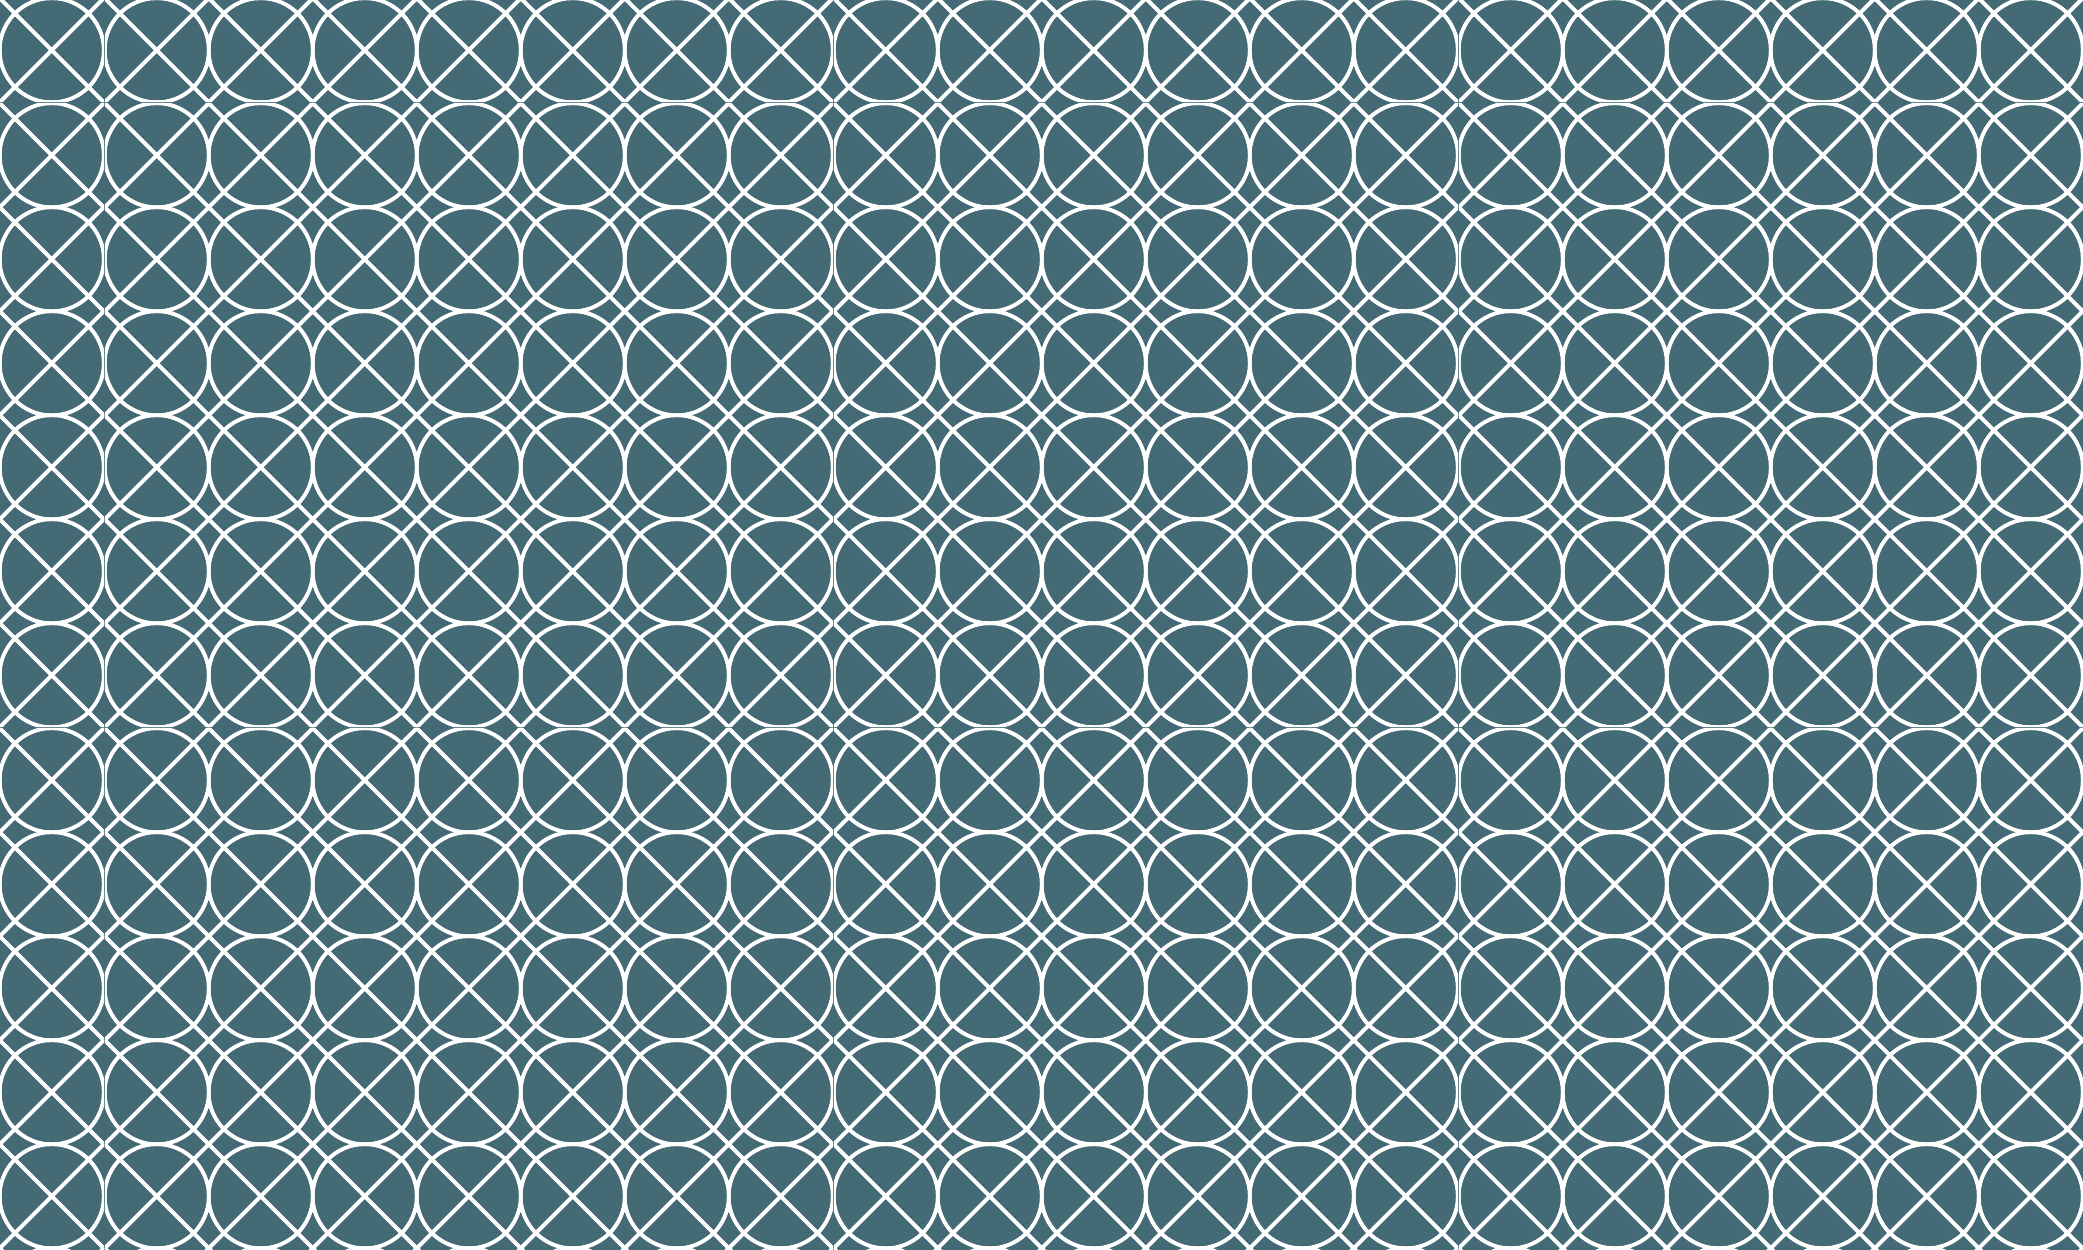 Creative Estuary brand architectural pattern 5